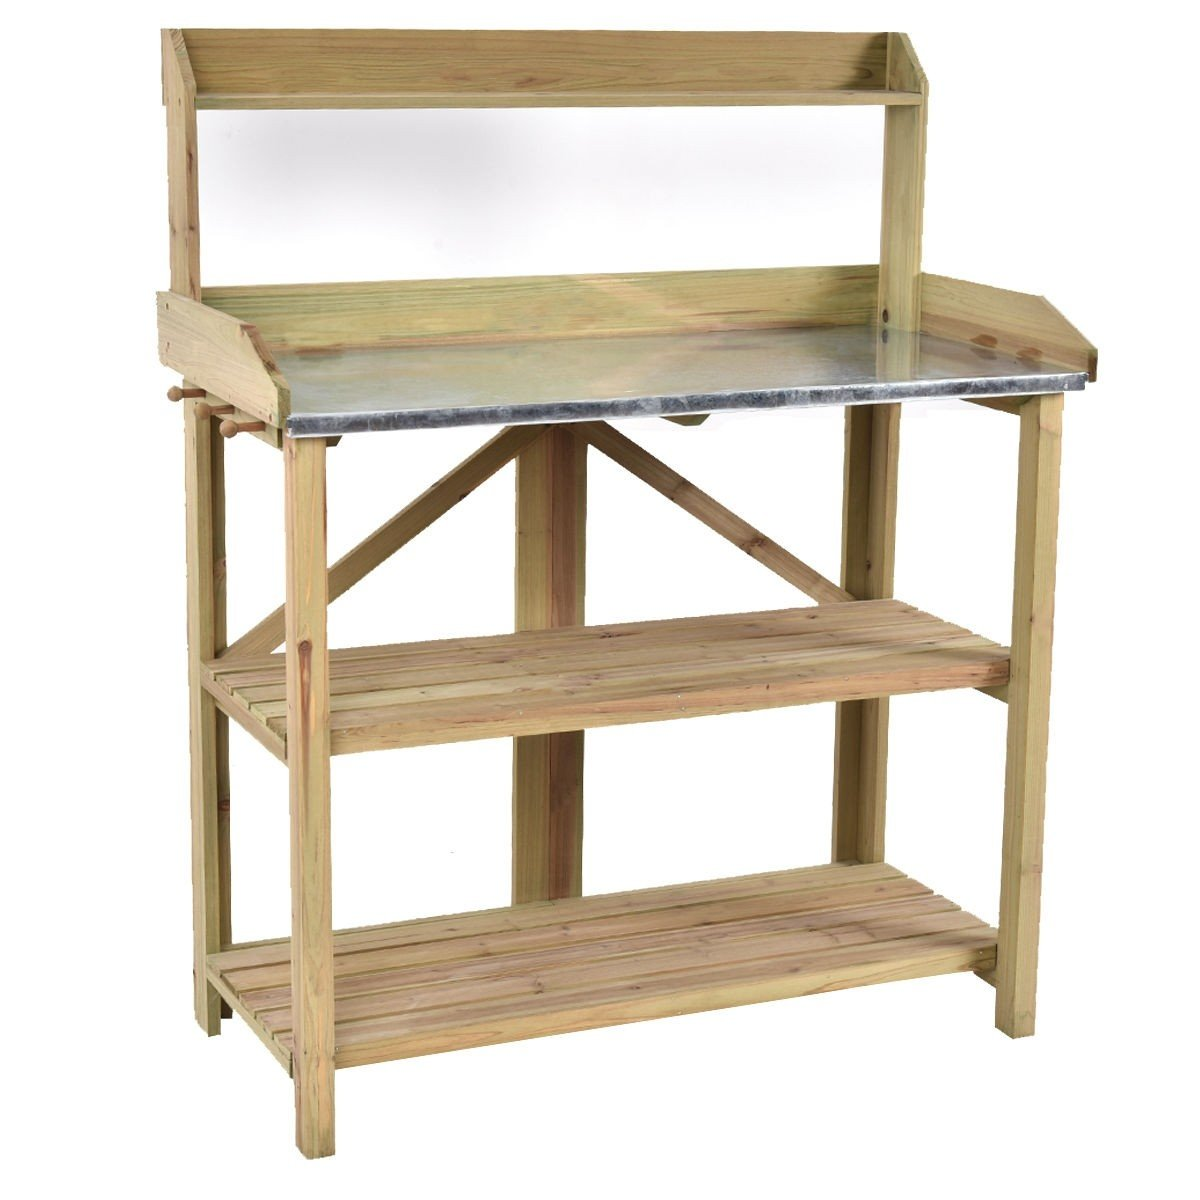 Blessing2220 Outdoor Garden Potting Bench Planting Workstation Shelves with Solid Wood Construction (Series 1)